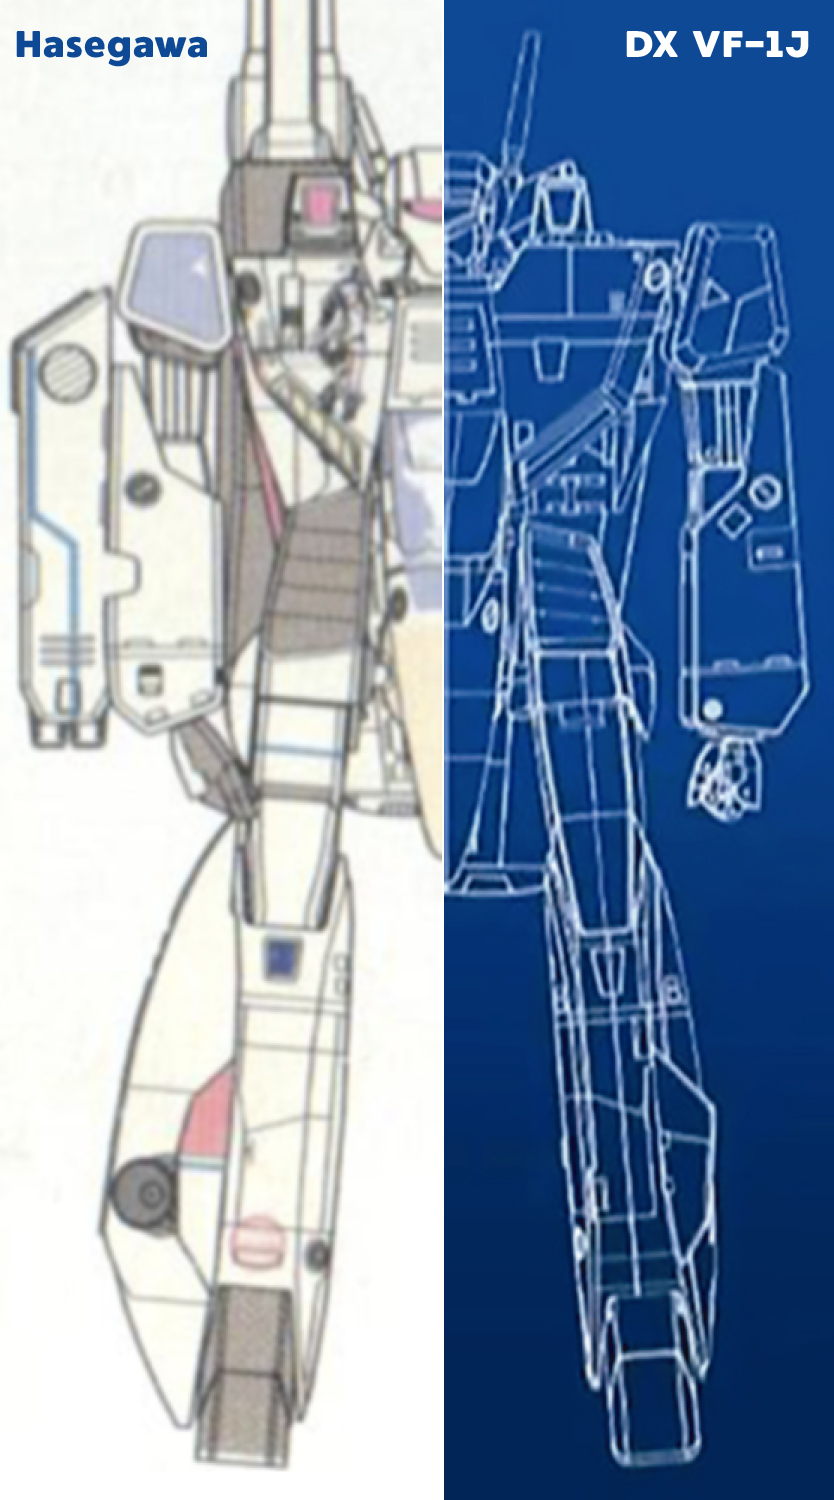 Dx Chogokin Vf 1j Page 5 Toys Macross World Forums Top Up Jenius Balance But I Dont Love The Neckless Thats Why A Lot Of People Like Hasegawa That Seems To Be More Balanced Considering Advantage Non Transformable